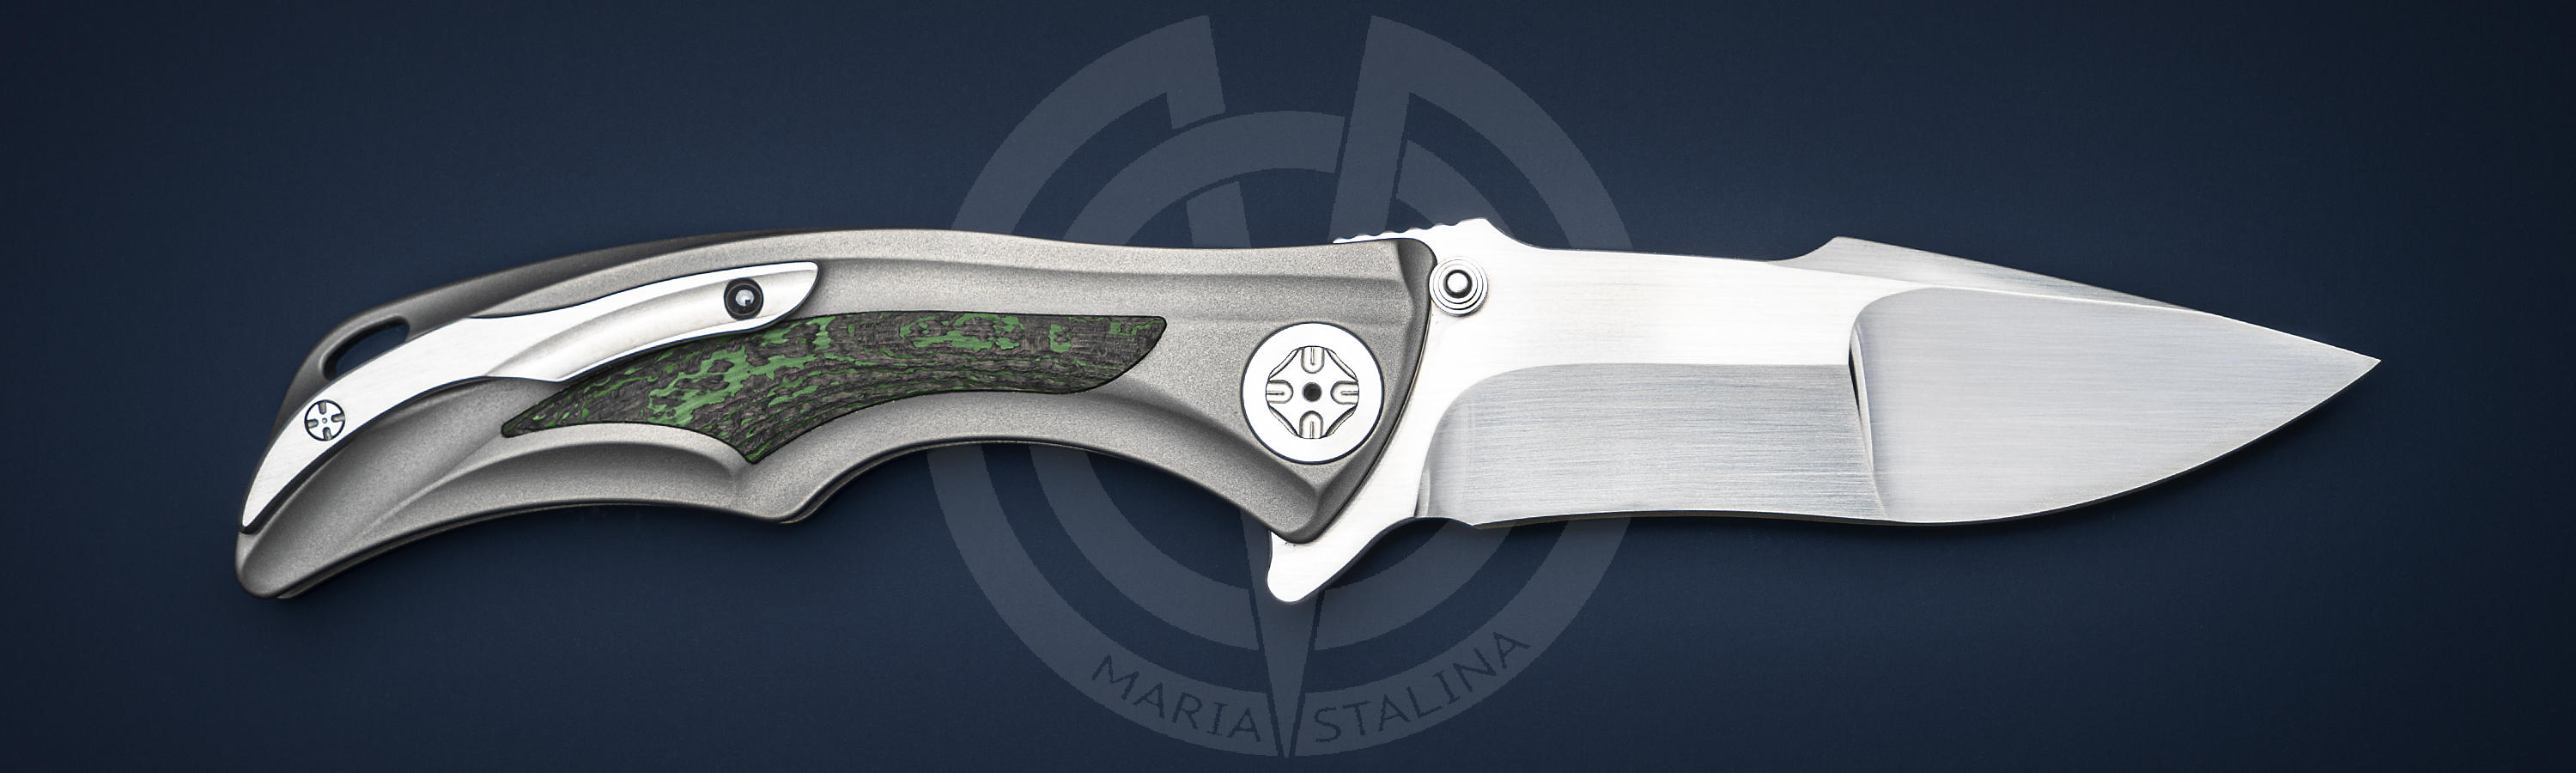 Blade material	steel RWL-34 knife Down Integral Green Carbon Fiber